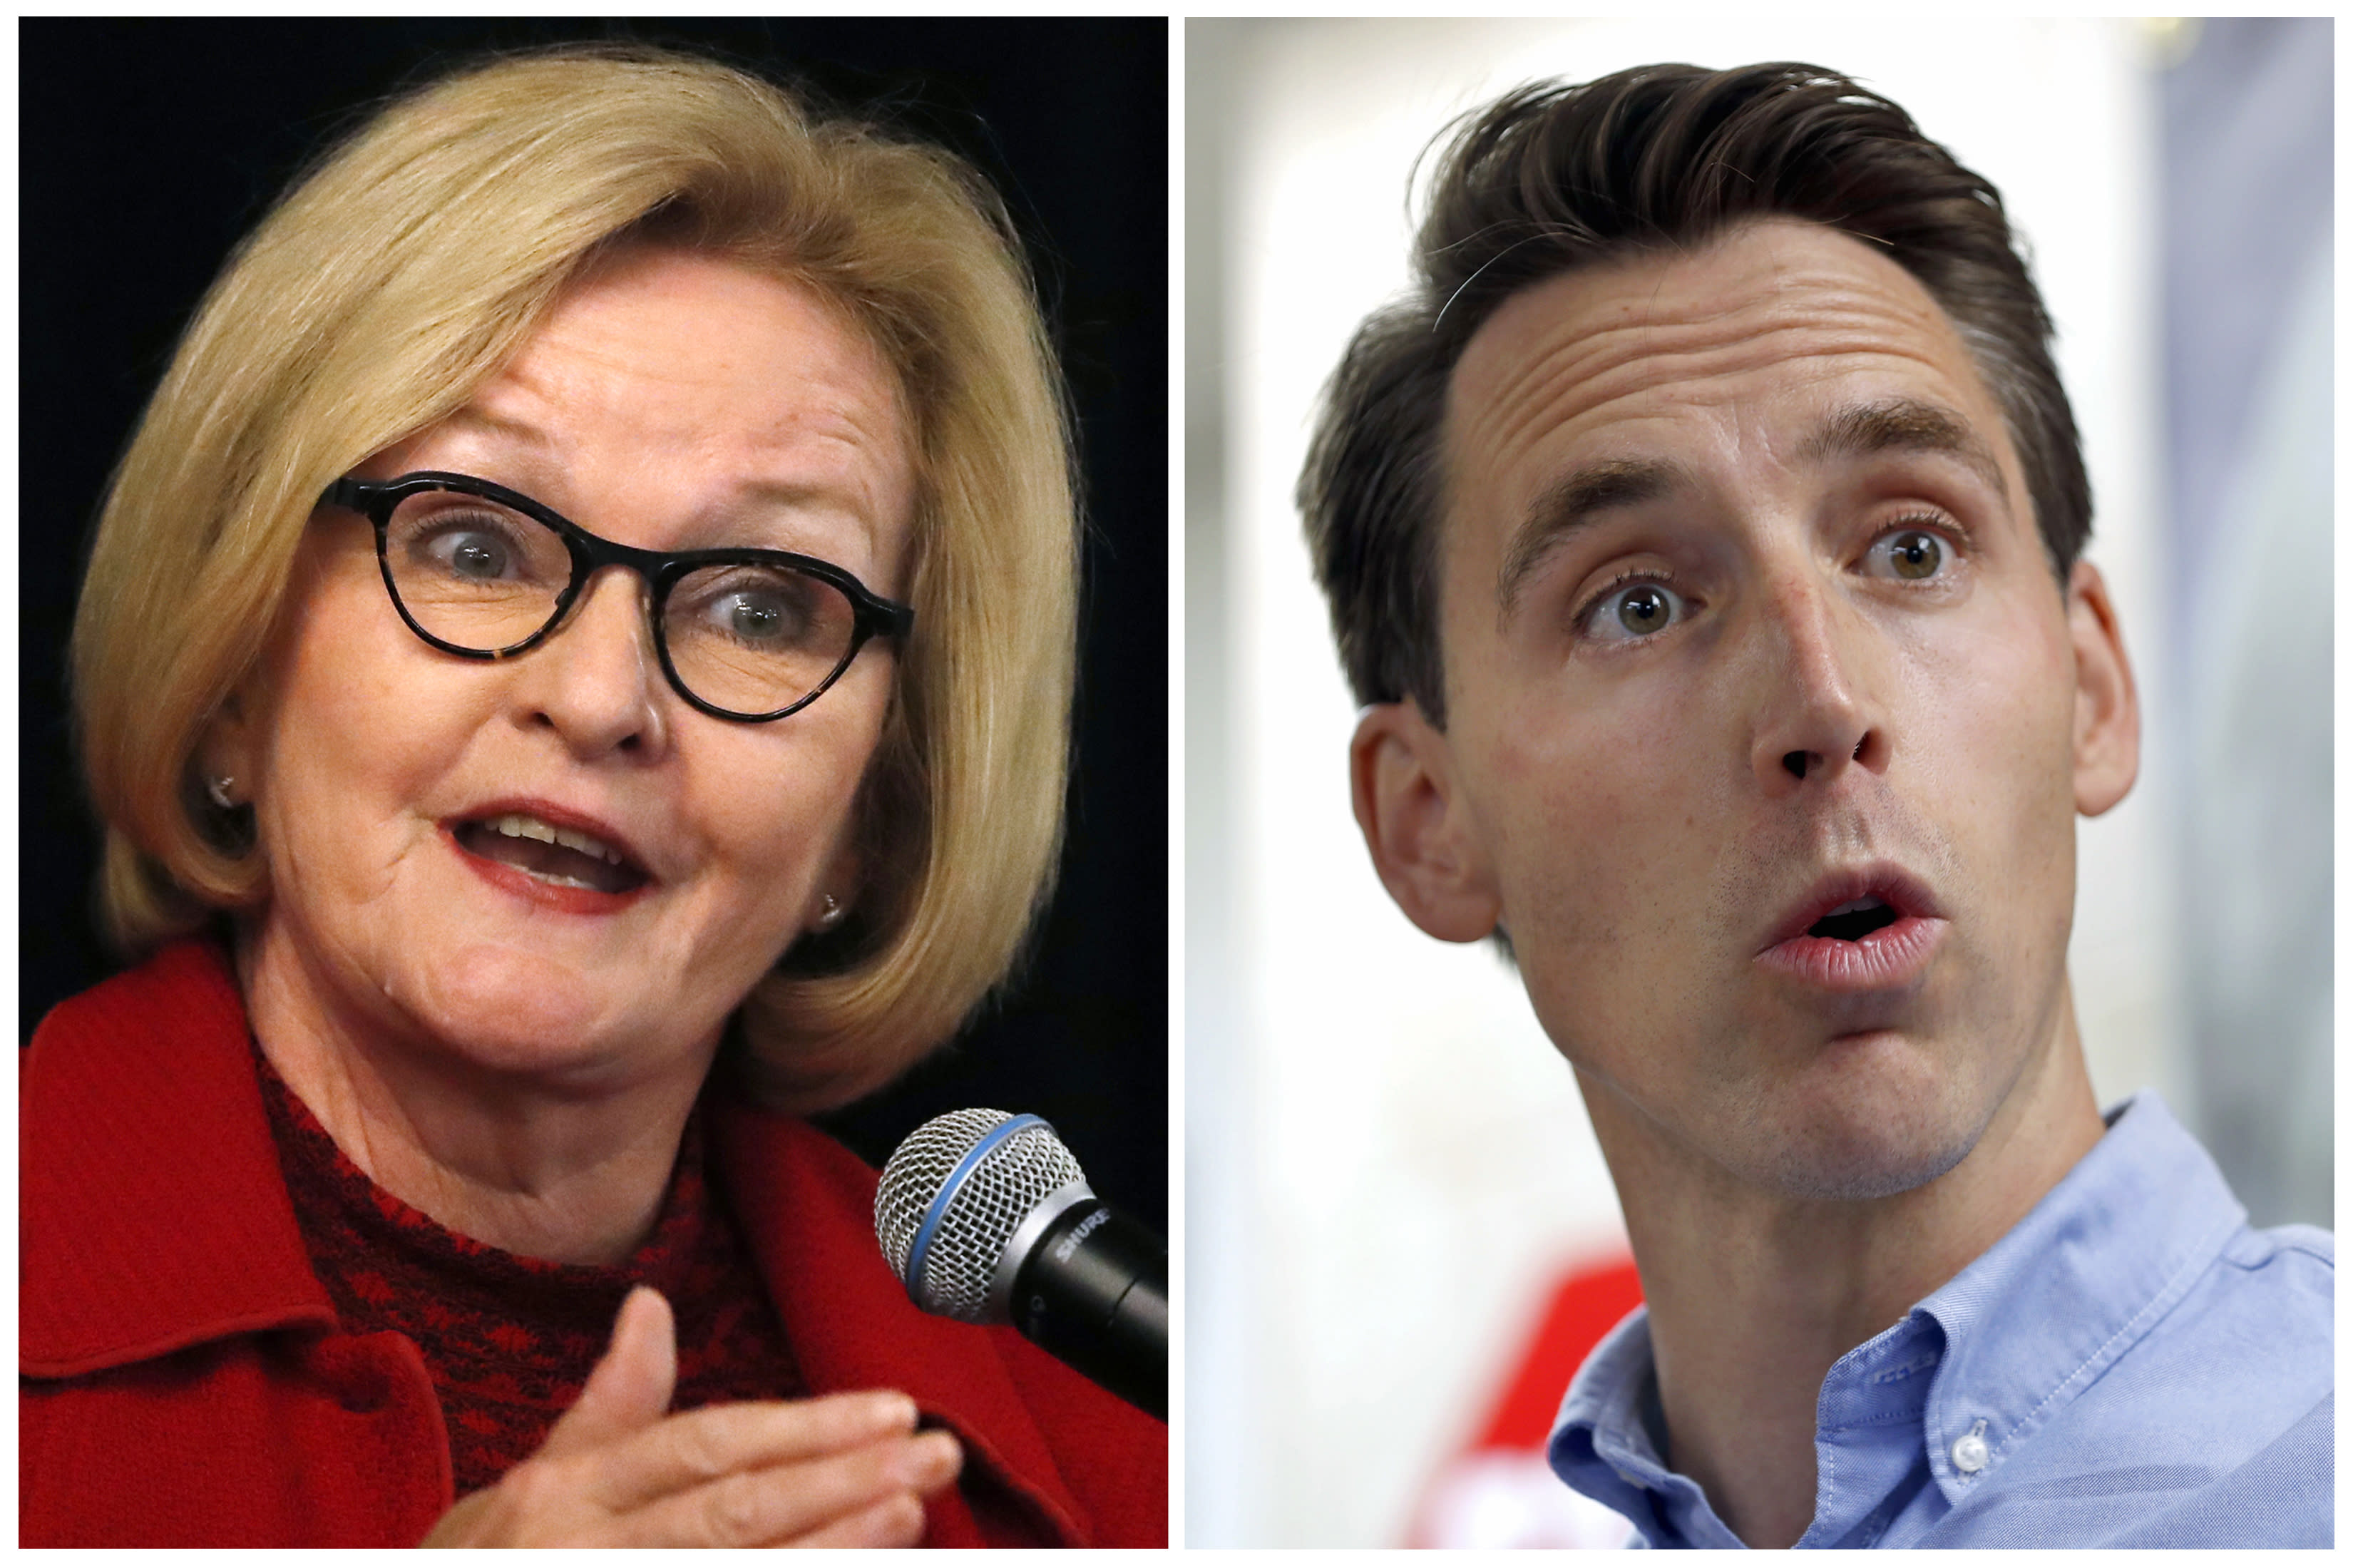 """FILE - This combination of file photos shows Missouri U.S. Senate candidates in the November election, Democratic incumbent Sen. Claire McCaskill, left, and her Republican challenger Josh Hawley. The Missouri version of a radio ad that suggests Democratic victories in midterm elections endanger African-American men and boys does not refer to lynchings as an ad in Arkansas does. But in Missouri, the ad against Democratic Sen. Claire McCaskill features a woman saying """"black folk will be catching hell again."""" Neither the Hawley nor McCaskill campaigns immediately responded to email messages Friday, Oct. 19, 2018 seeking comment. (AP Photo/Jeff Roberson, File)"""